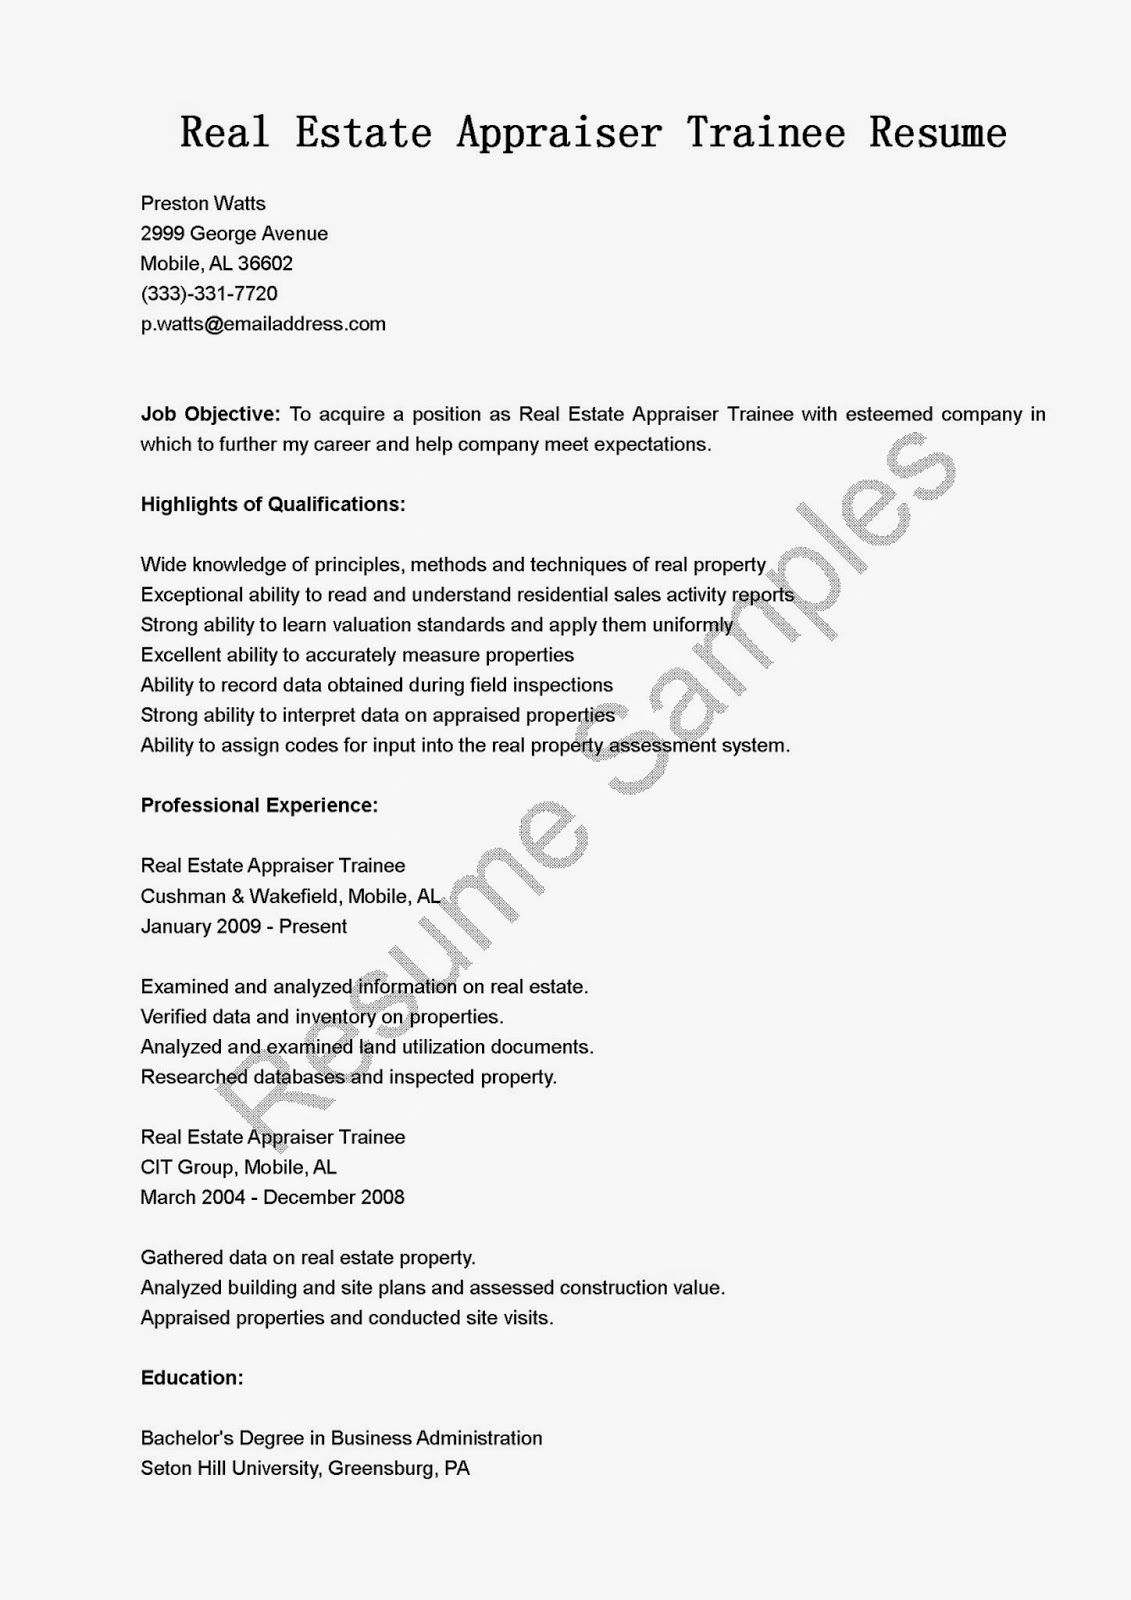 Real Estate Appraiser Trainee Resume Sample |Resume Samples